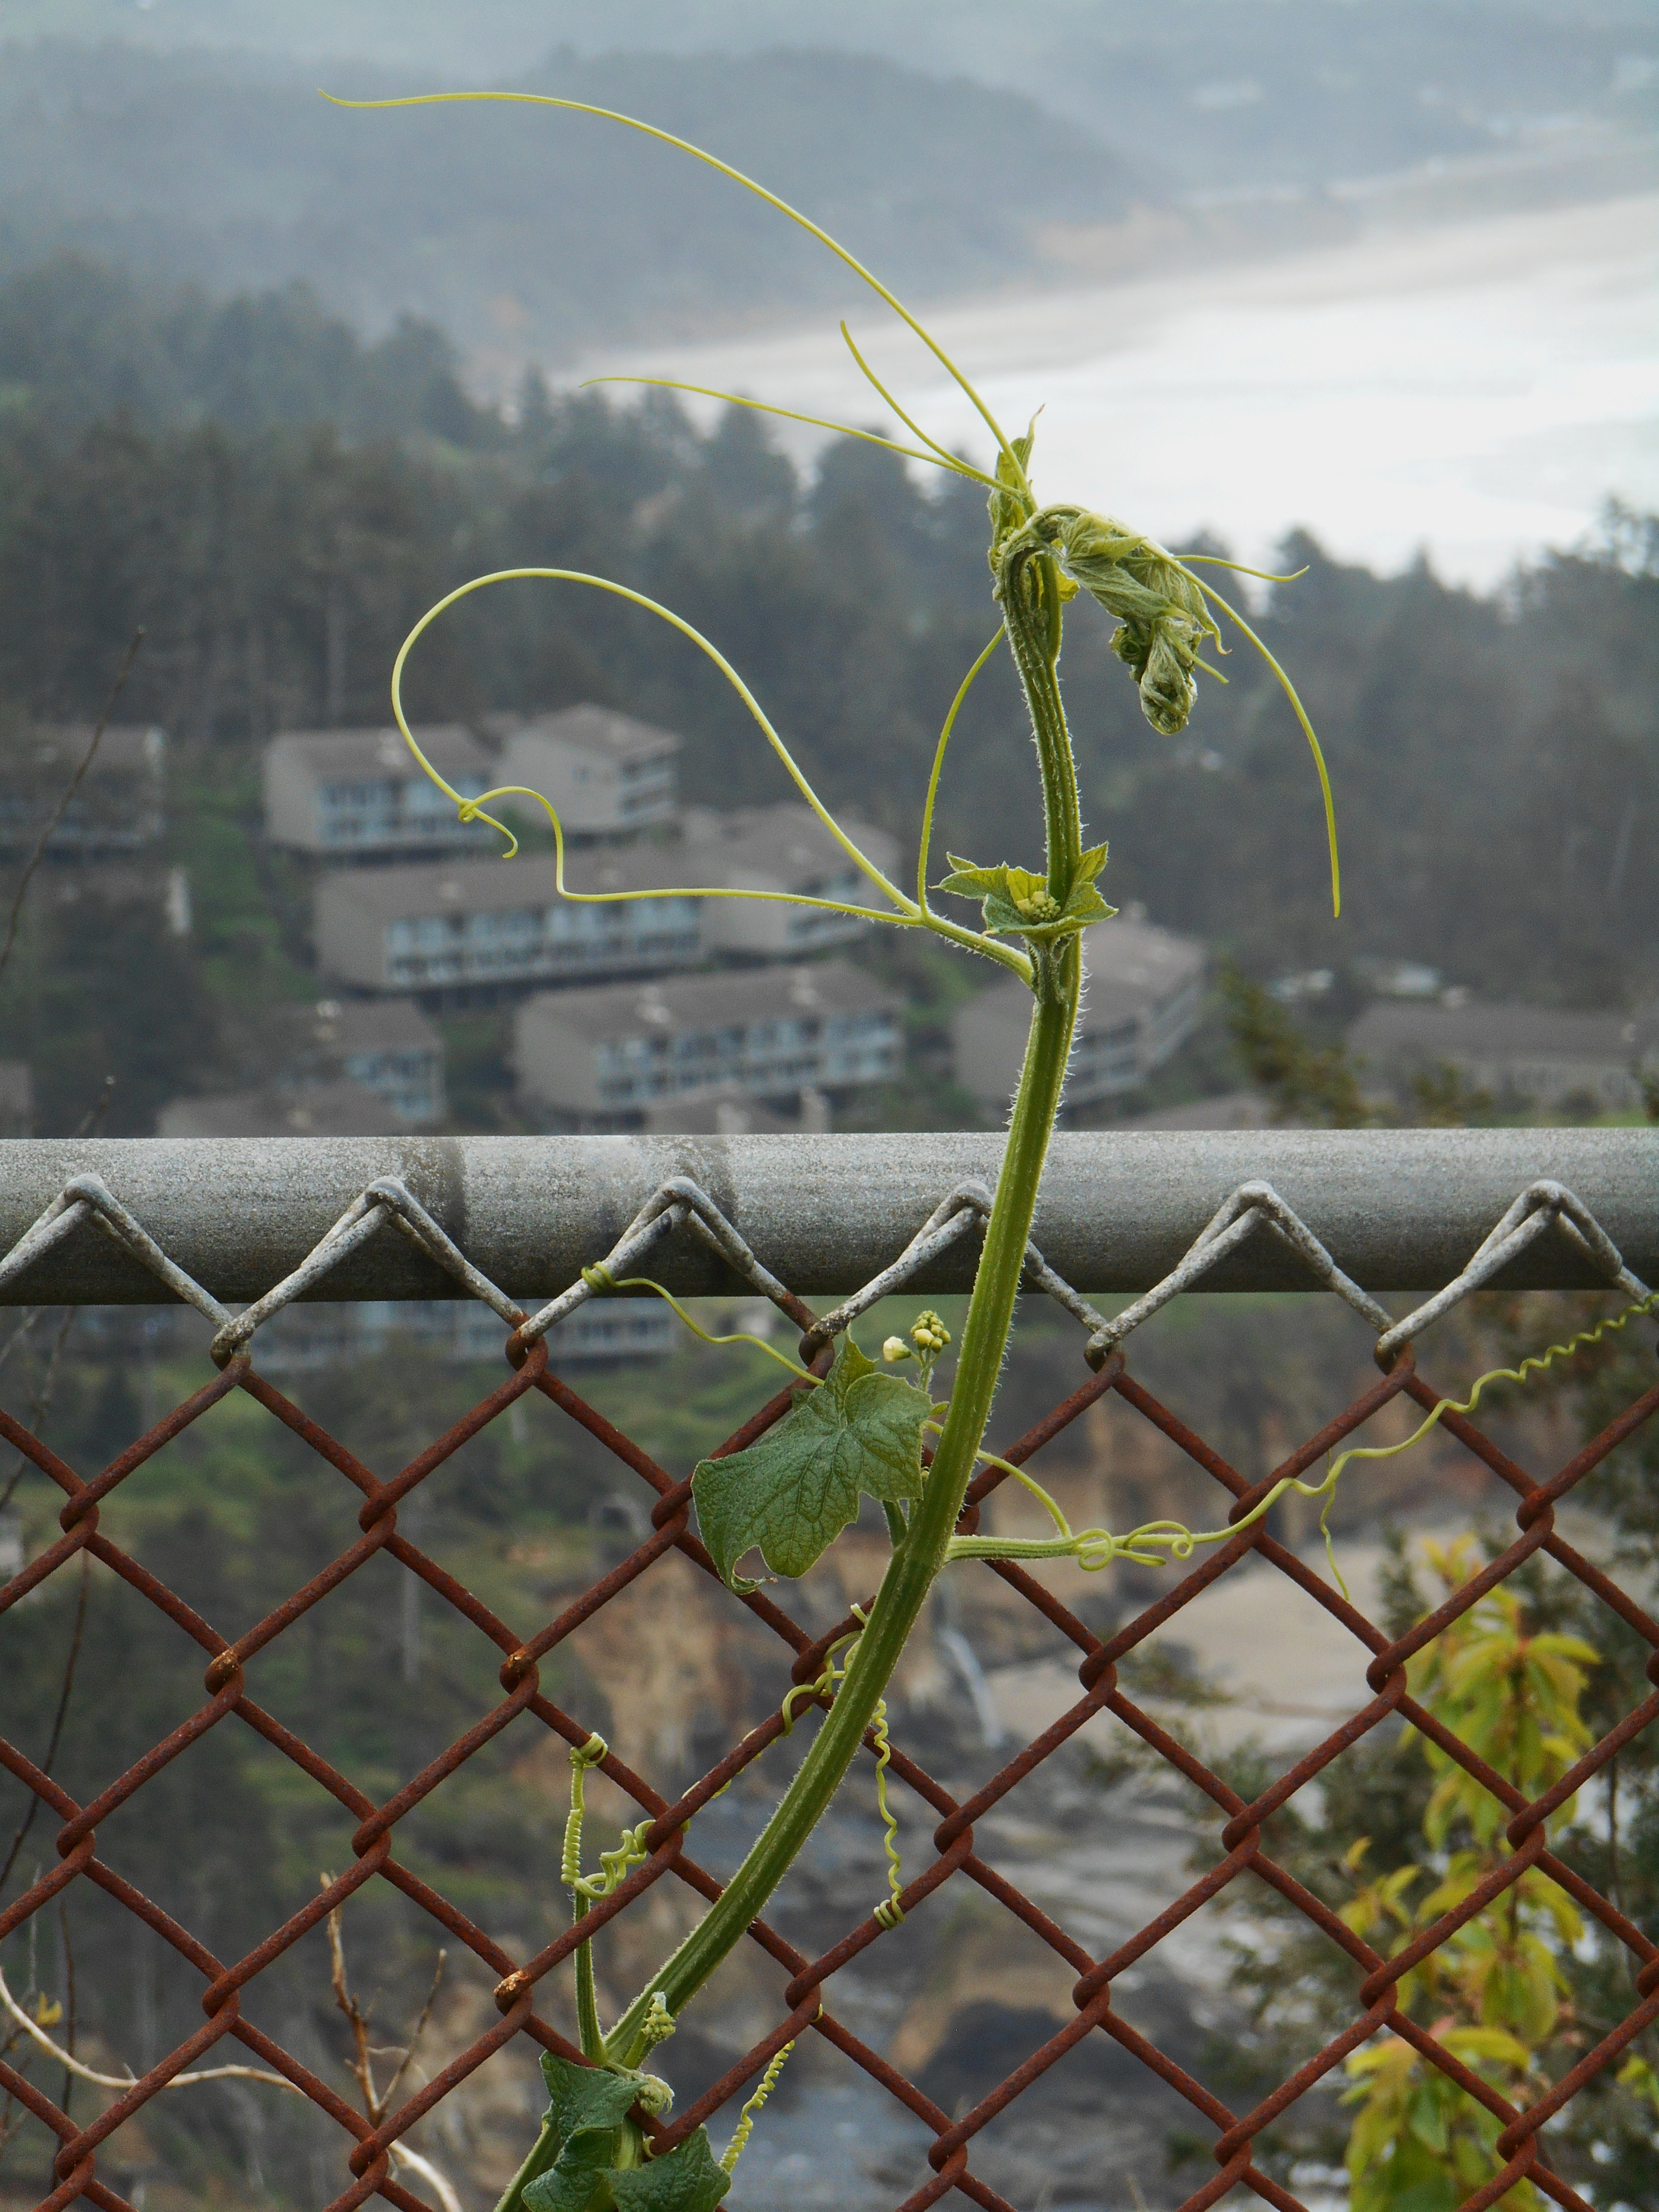 A wild cucumber vine growing at Cape Foulweather.